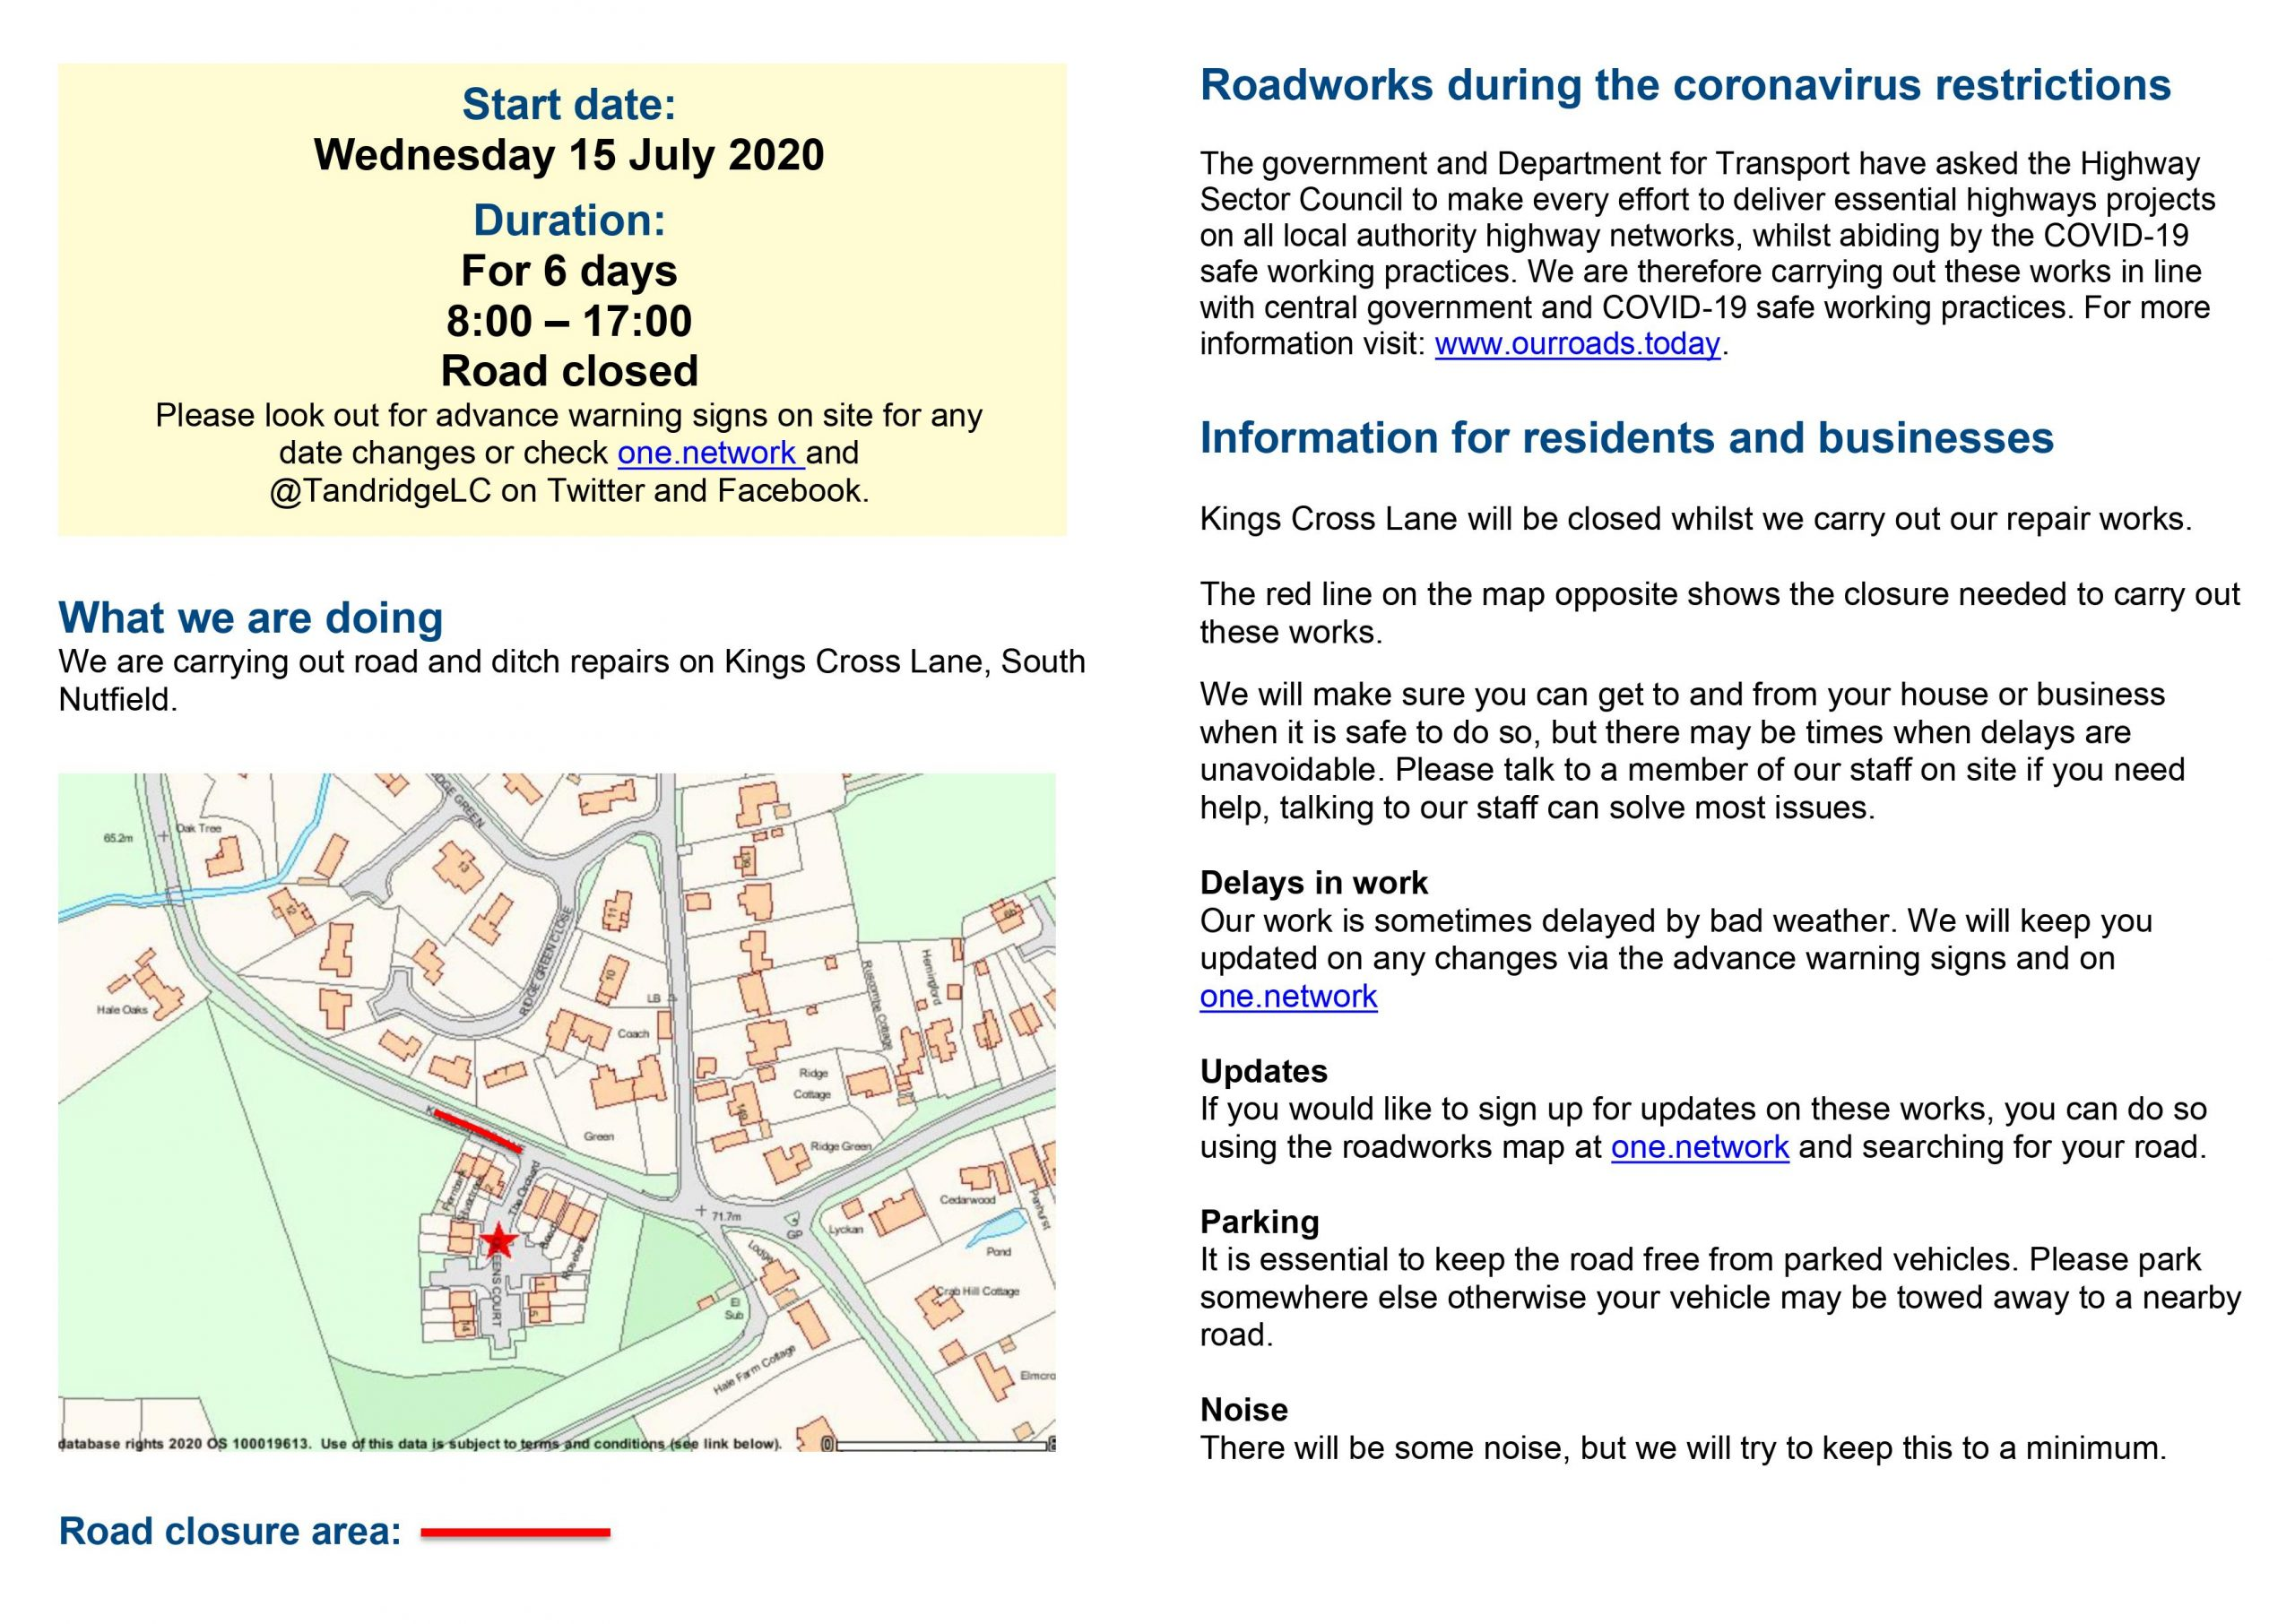 Road closure on Kings Cross Lane, South Nutfield - Road and ditch repairs leaflet 1